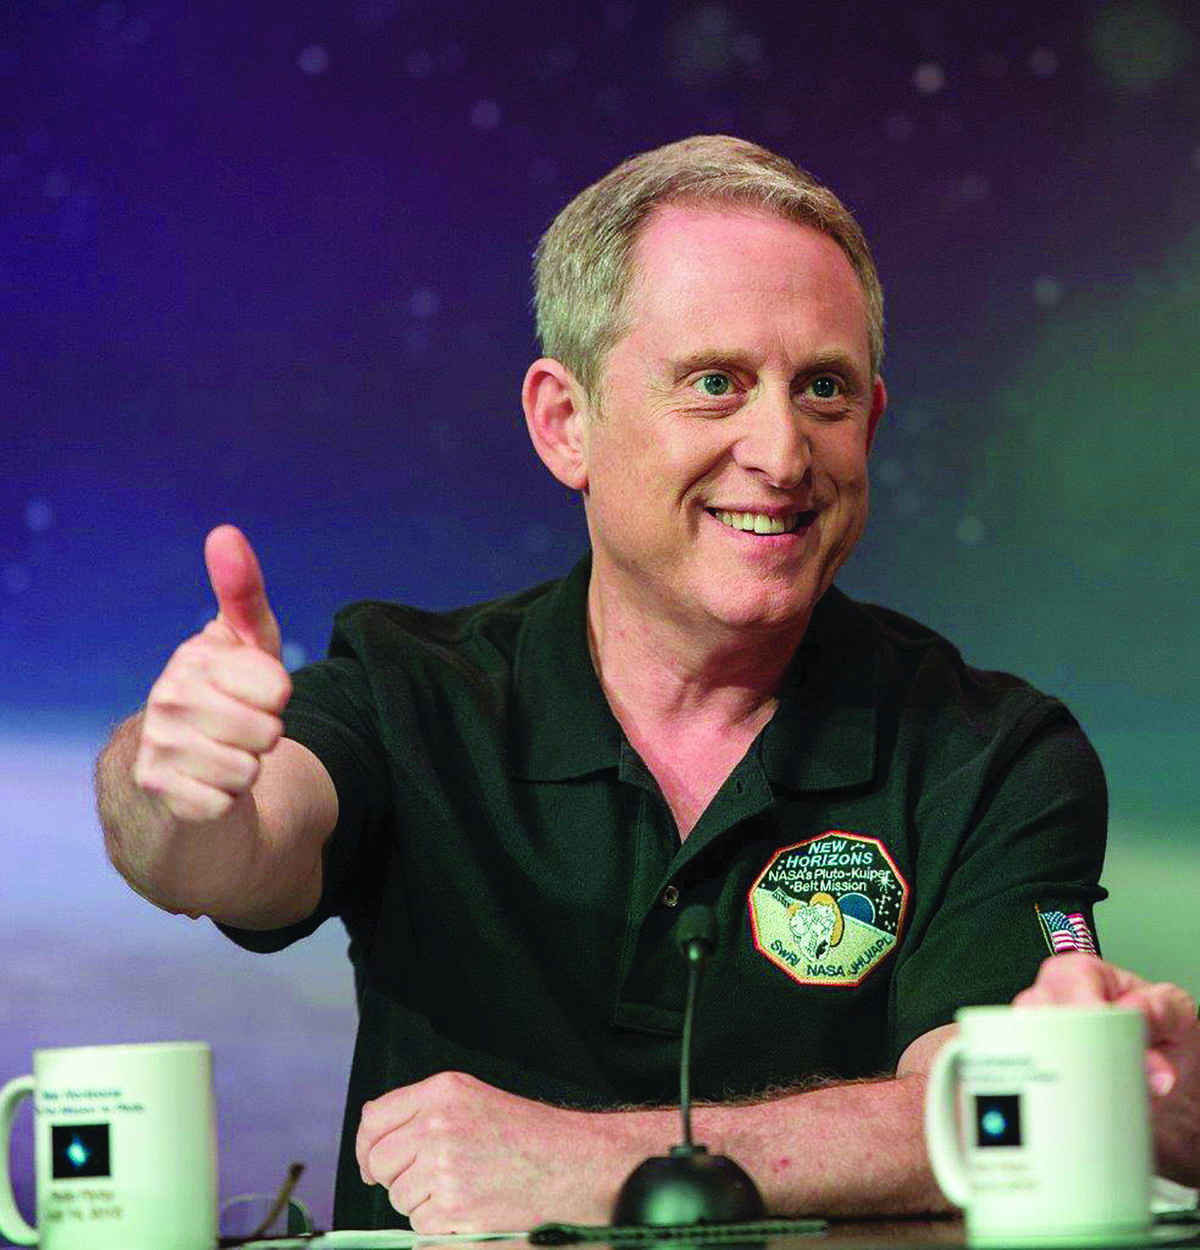 Image: Dr. Alan Stern, associate vice president of the Space Science and Engineering Division at Southwest Research Institute